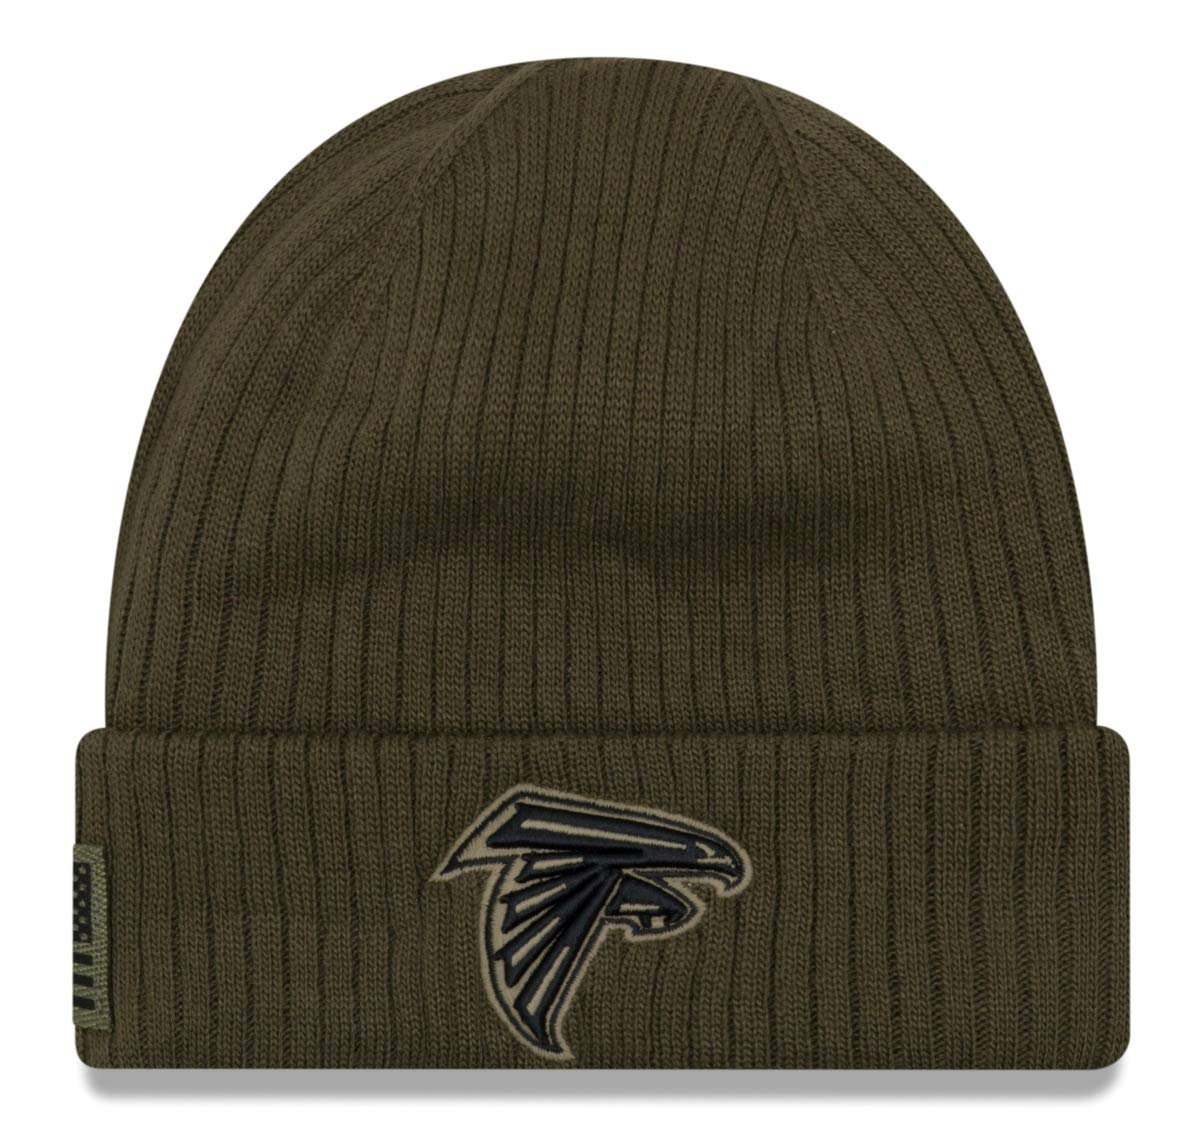 64845a86 New Era 2018 Mens Salute to Service Knit Hat